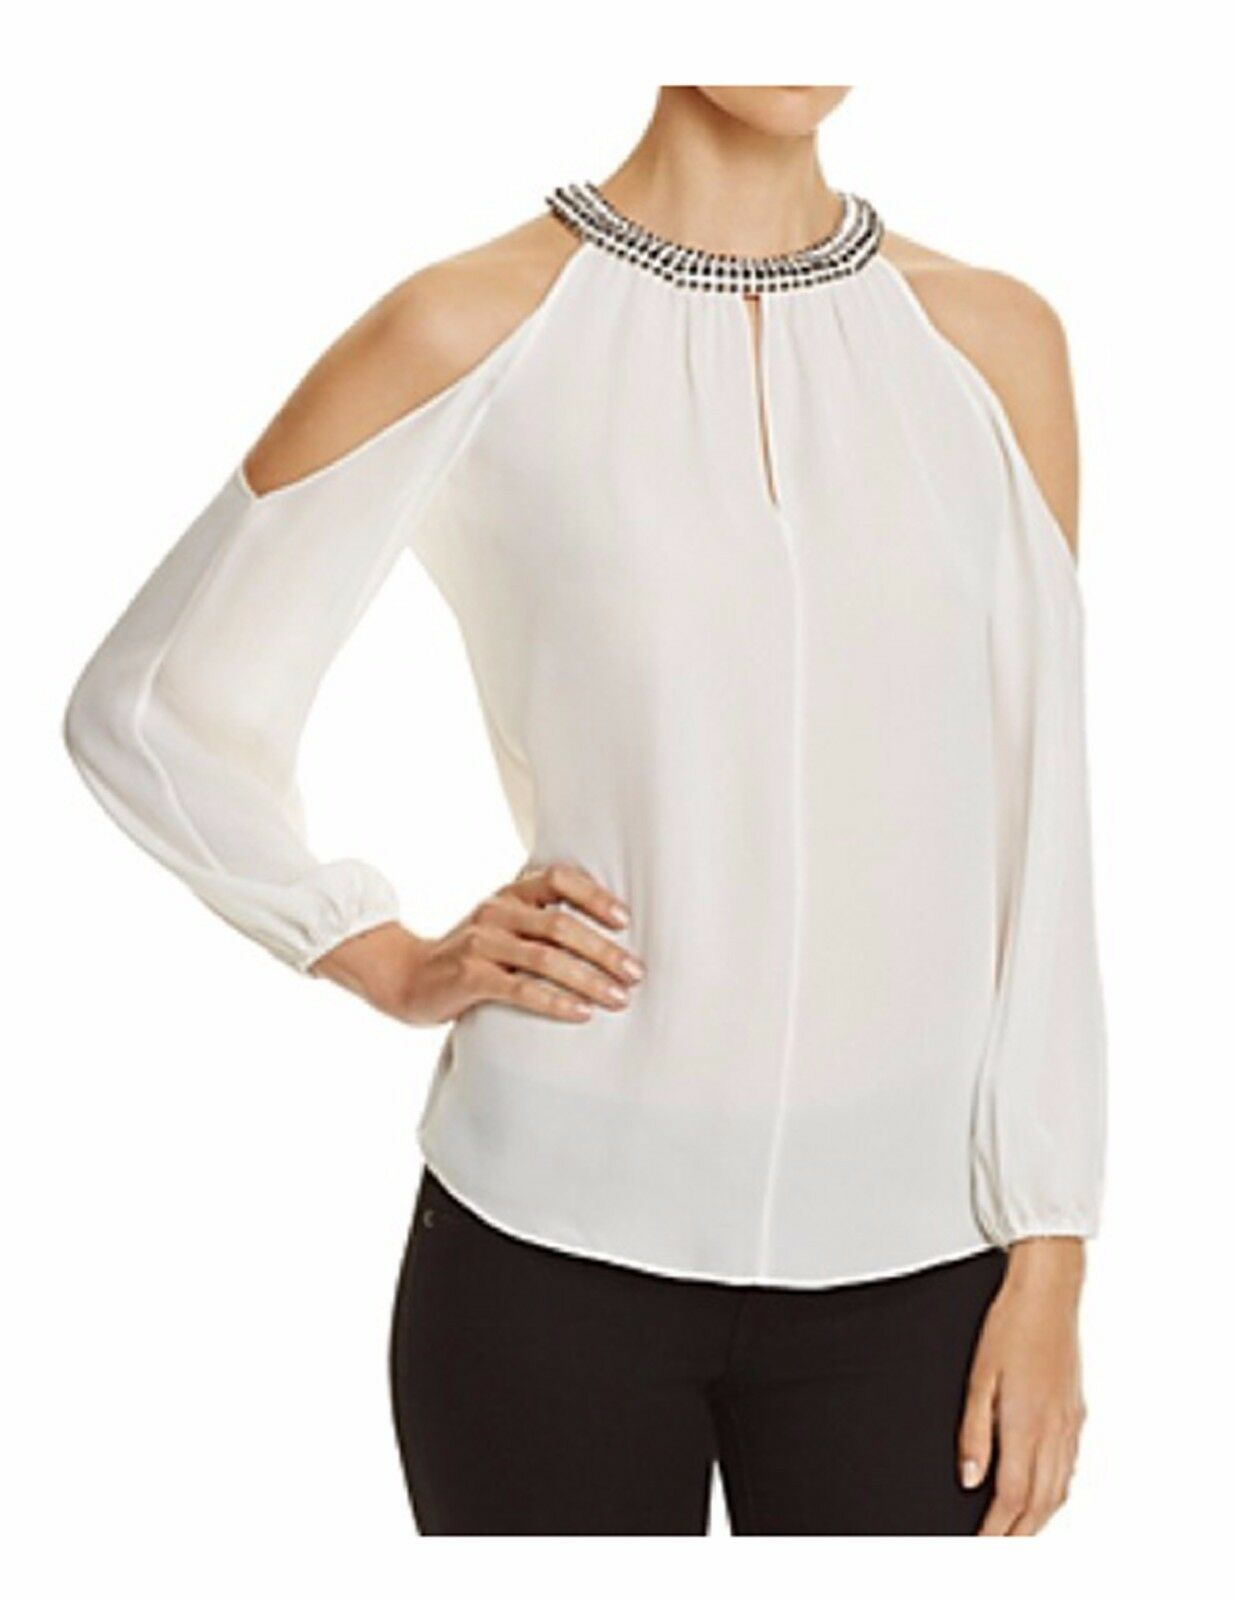 NWT  398 Kobi Halperin Women's Valarie Embellished Cold Cold Cold Shoulder Top Blouse S f88cc9